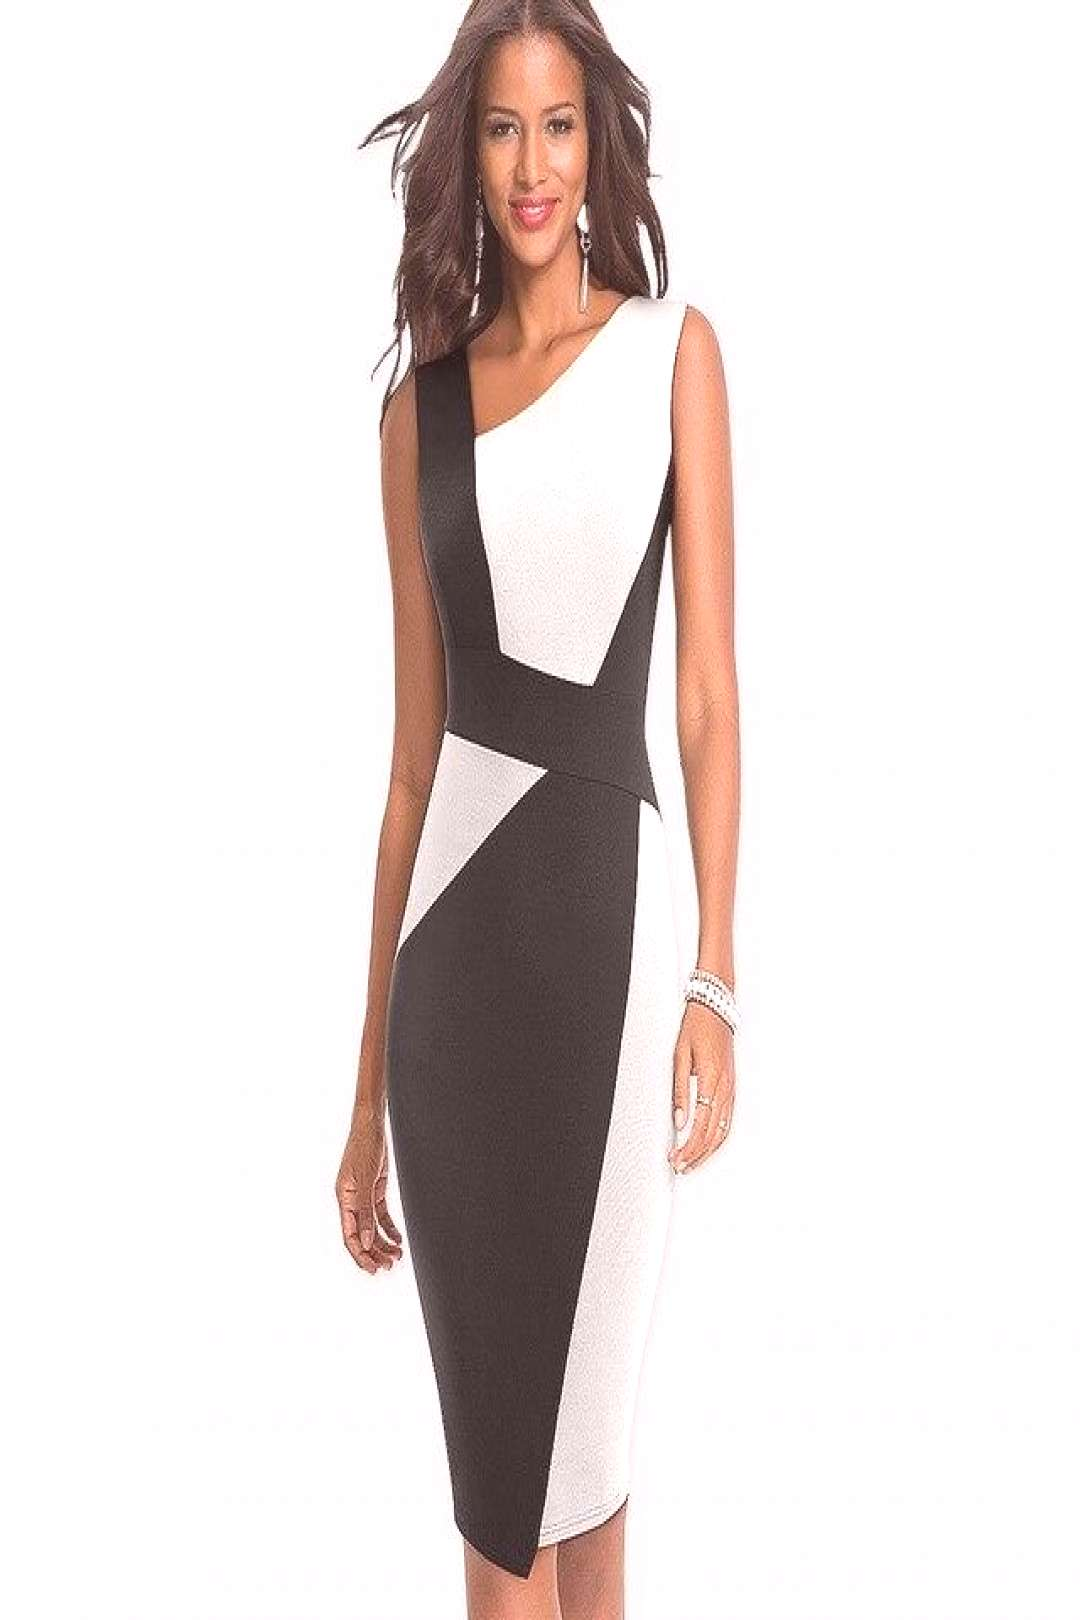 New Fashion Patchwork Elegant Office lady dress Sheath Fitted Bodycon Business pencil dress HB517 -